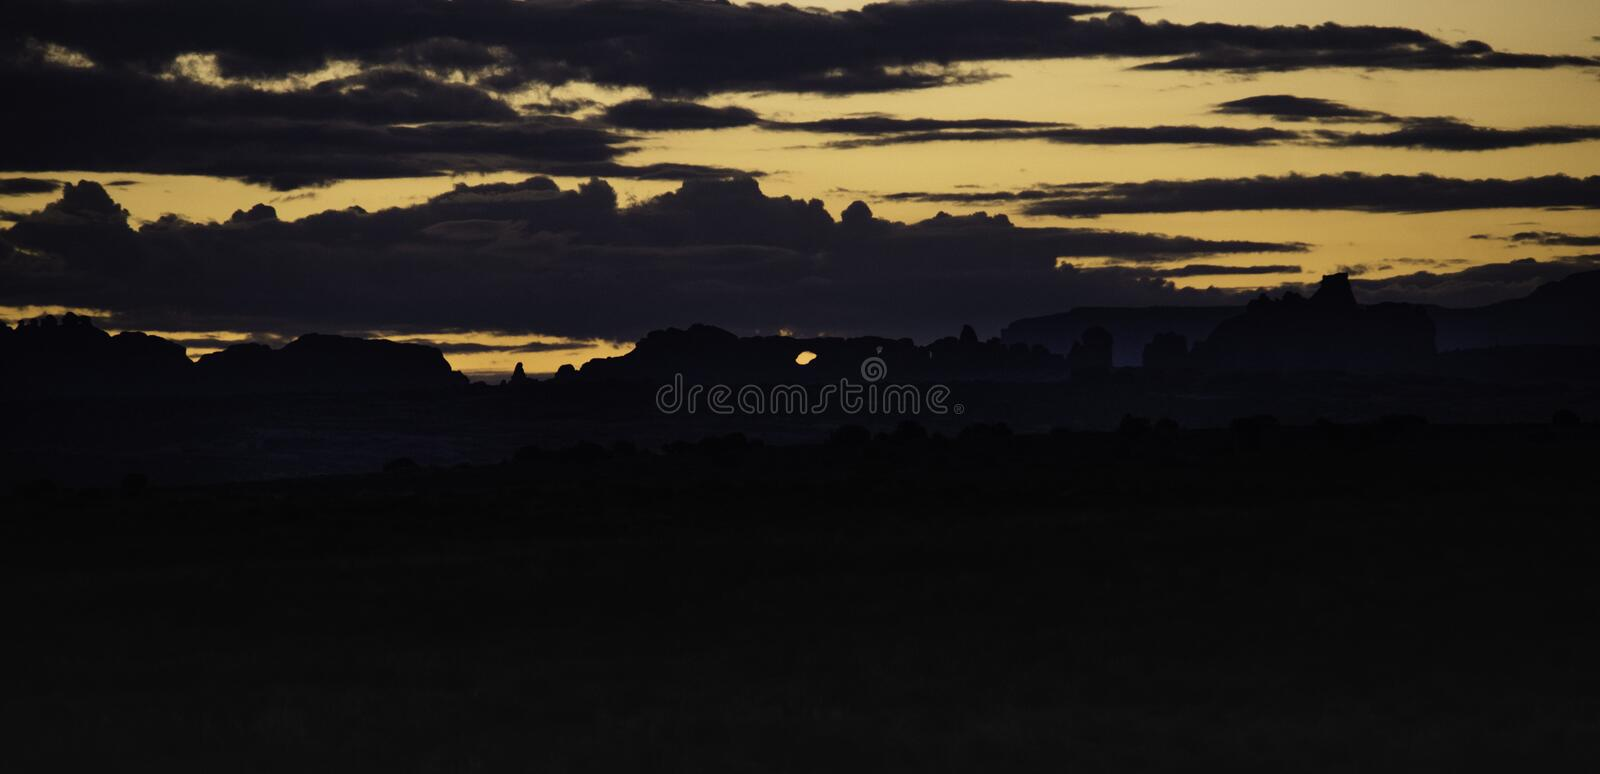 Arches National Park at sunrise. Arches National Park, UT, sun rising over the desert mountains royalty free stock image